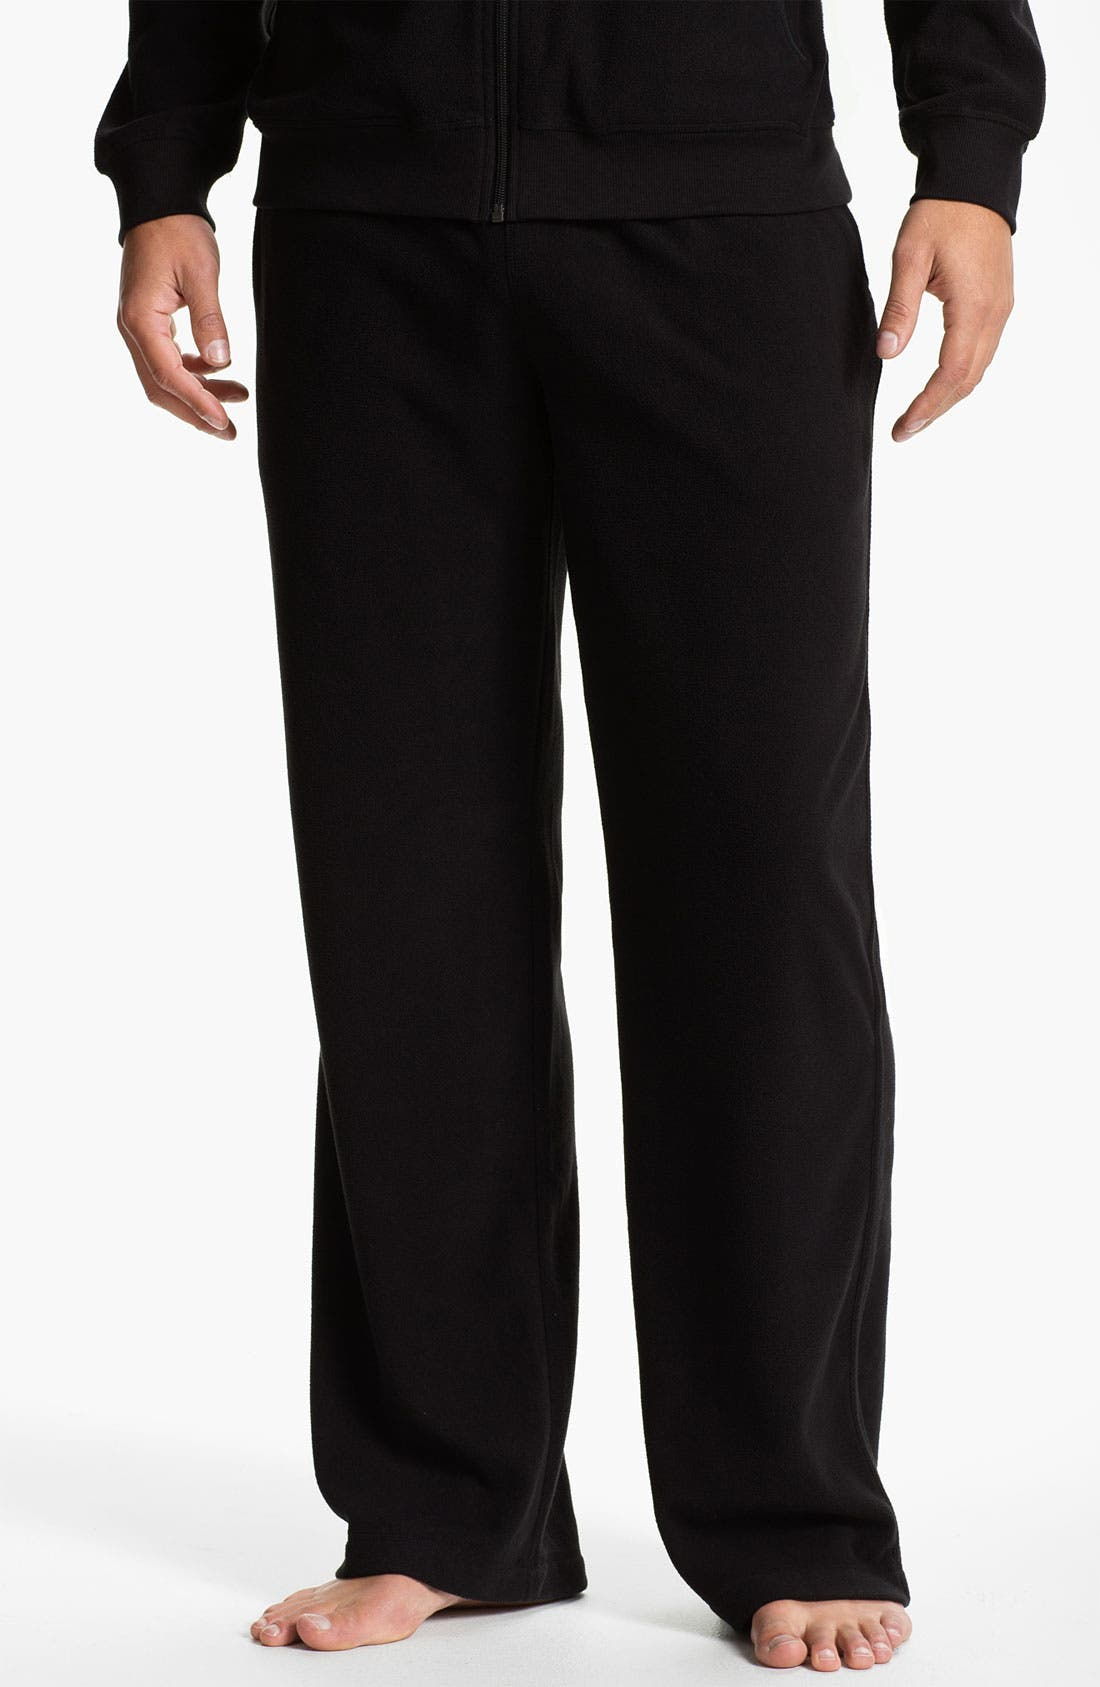 Alternate Image 1 Selected - Daniel Buchler Lightweight Fleece Lounge Pants